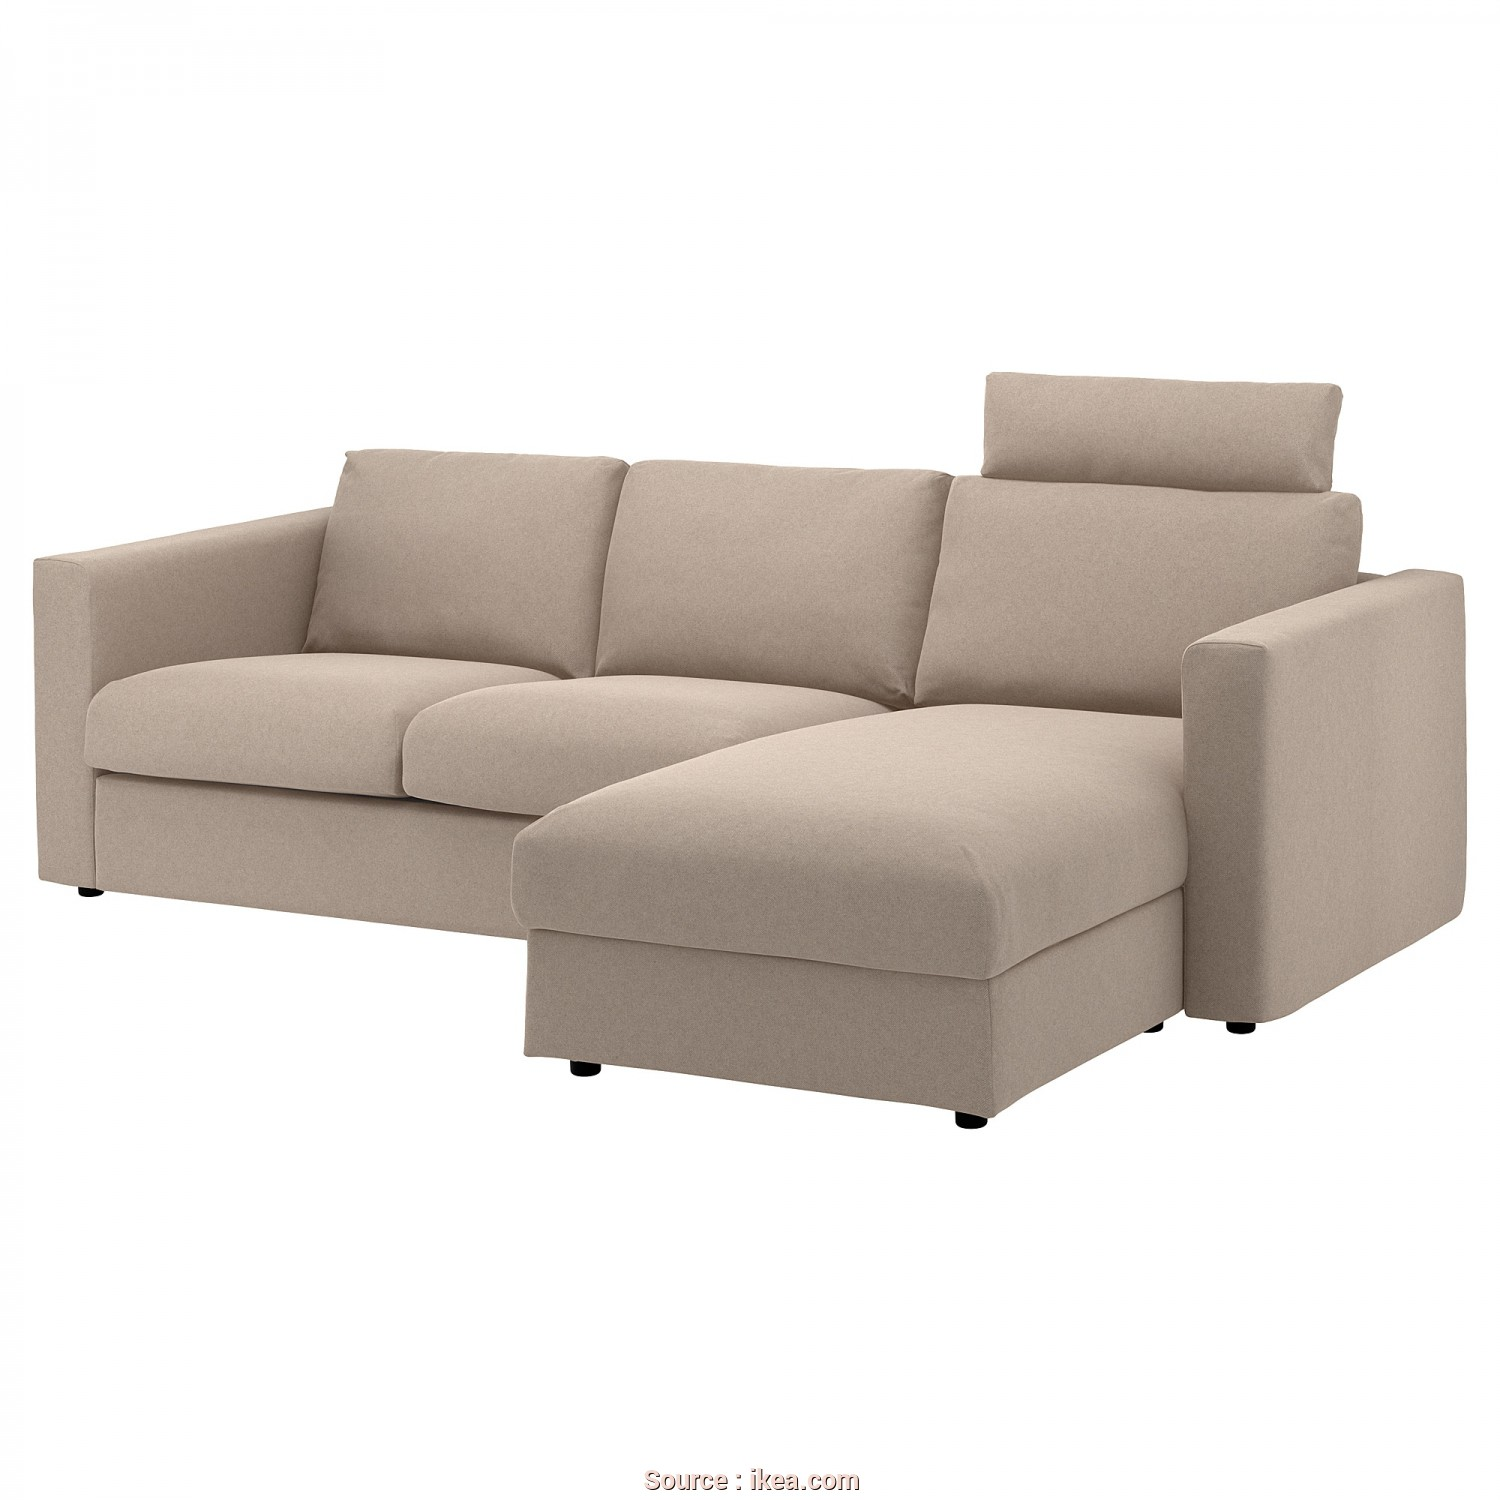 Ikea Divano 2 Posti, Chaise Longue, Eccezionale IKEA VIMLE 3-Seat Sofa, Cover Is Easy To Keep Clean Since It Is